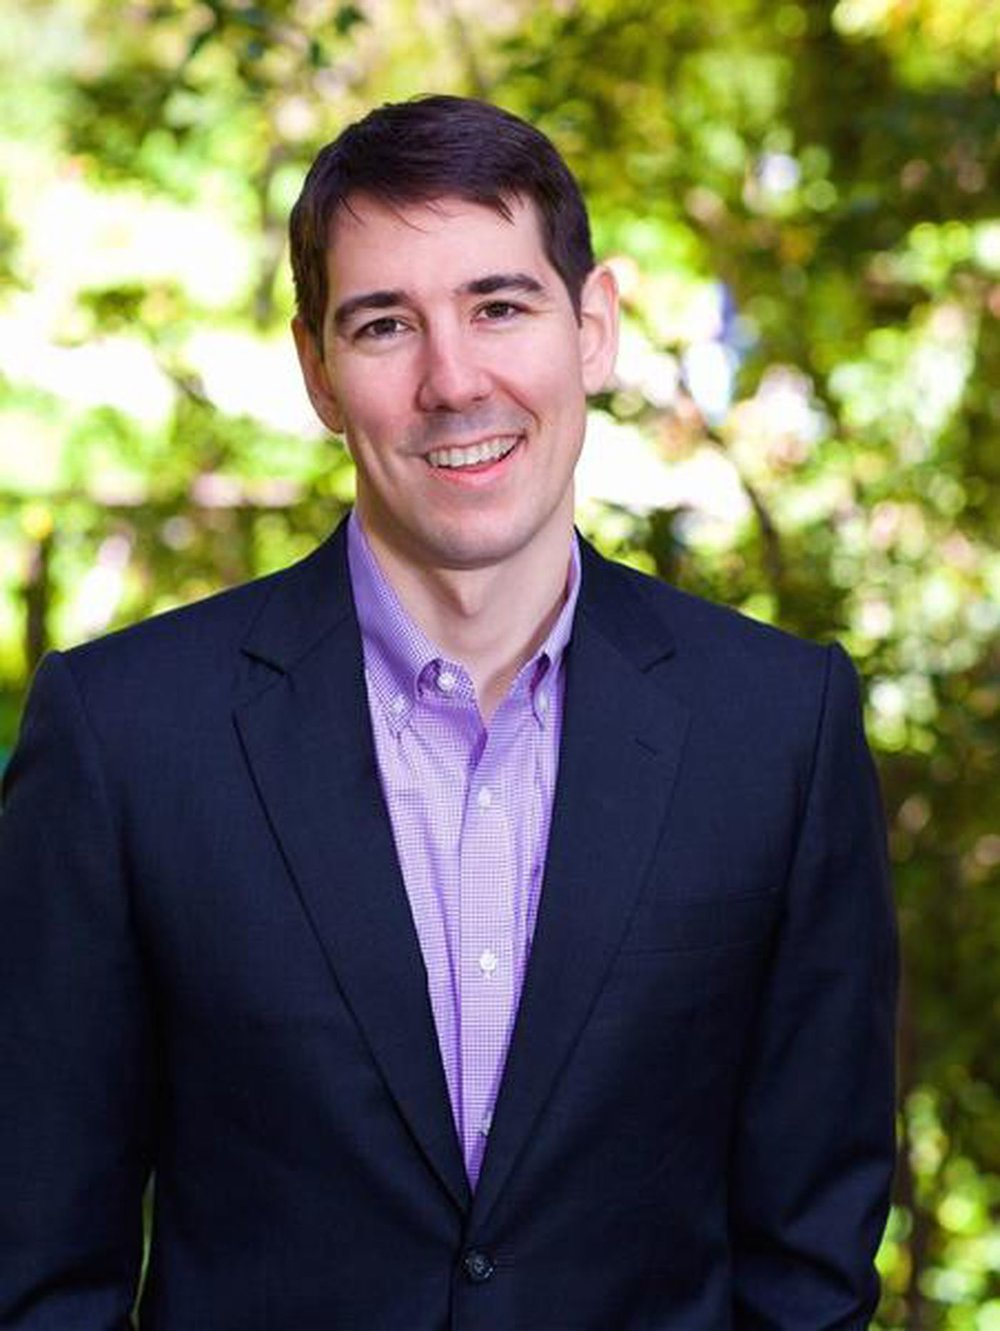 Josh Harder, CA-10   MBA |MPP | Former VP of investment firm   LinkedIn  |  Campaign site